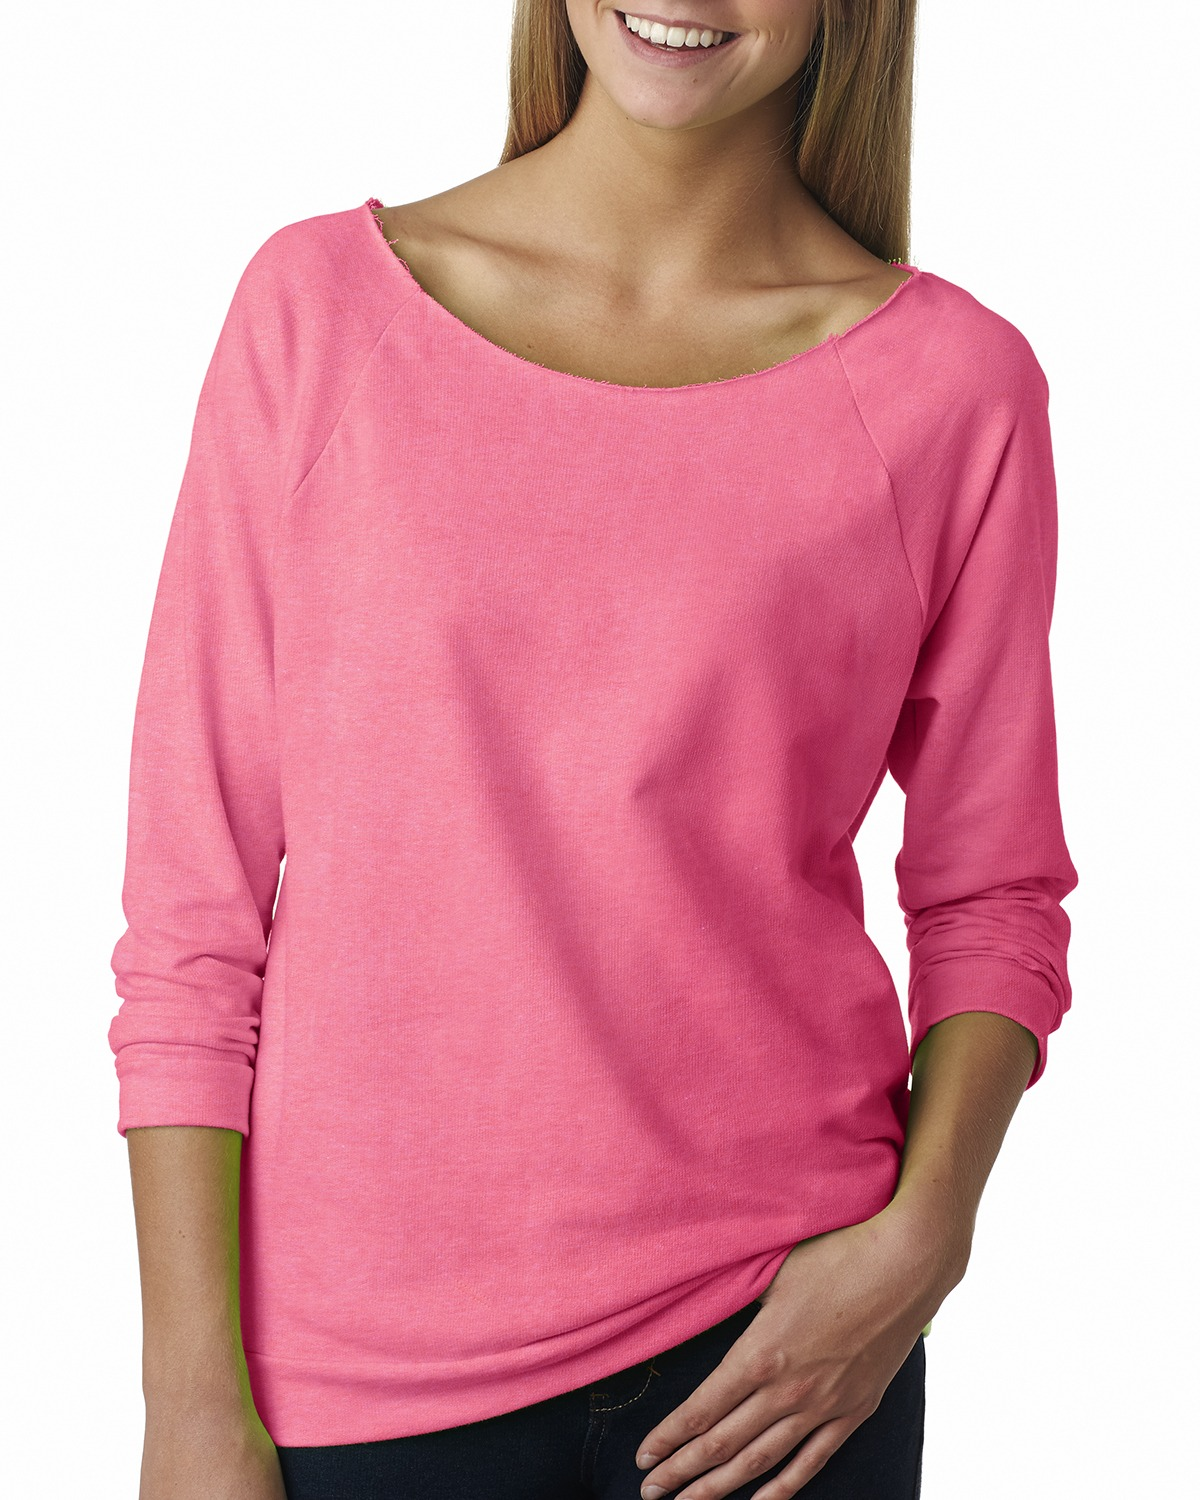 click to view Neon Heather Pink